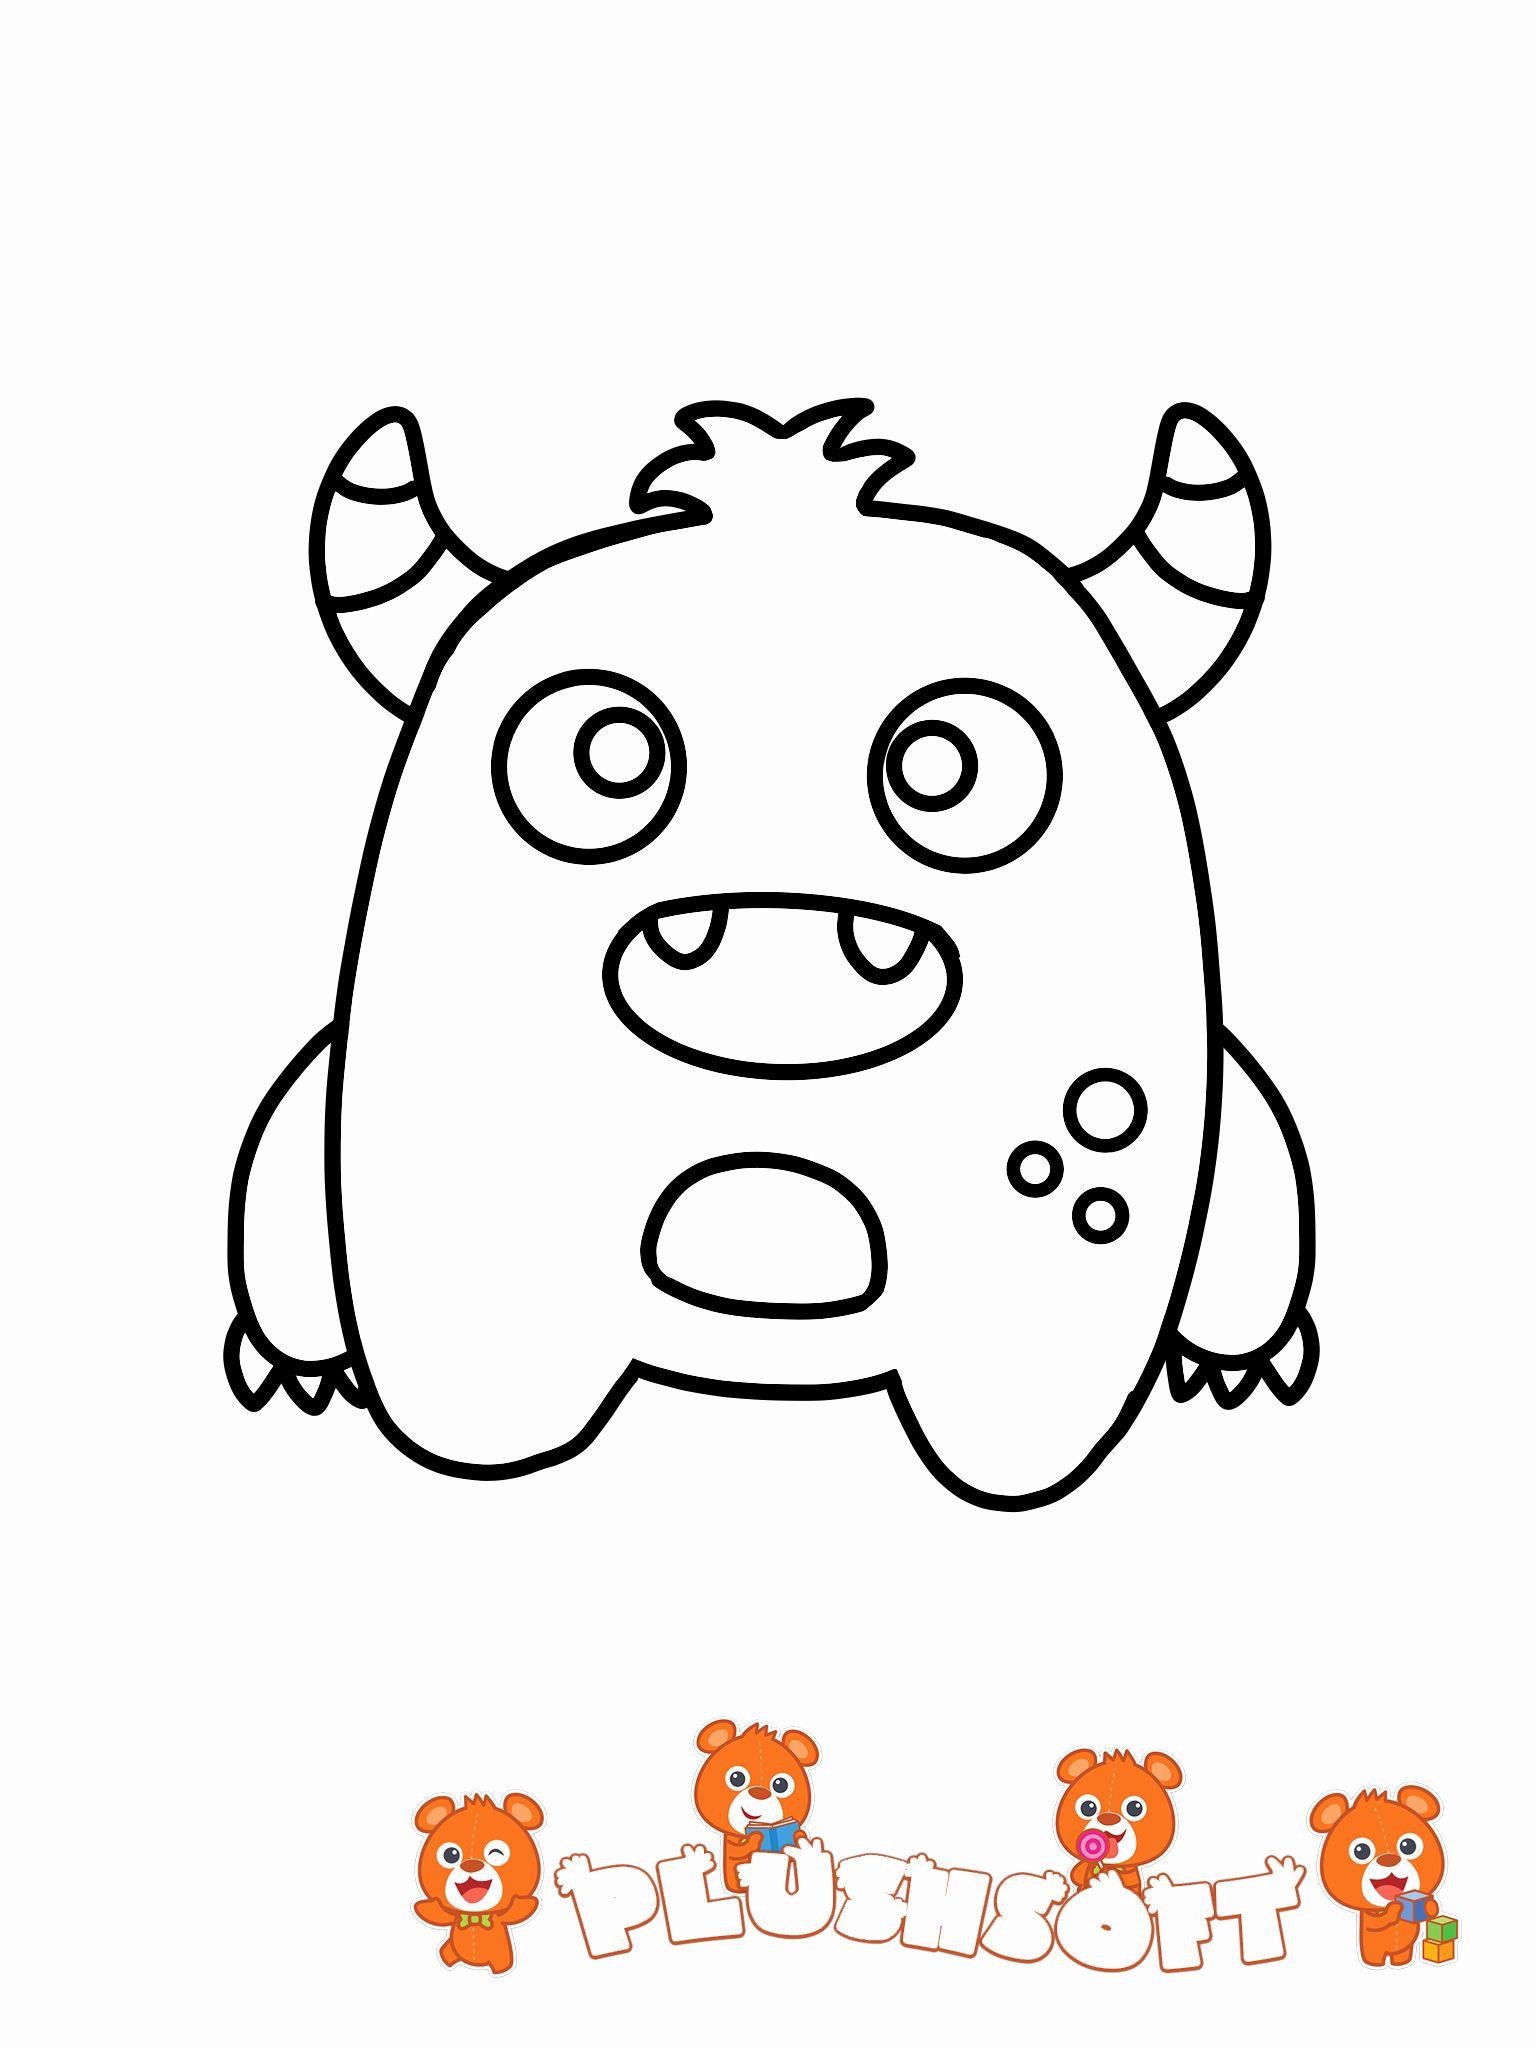 Cute Baby Fox Coloring Pages New Free Printable Coloring Page A Cute Monster For Your In 2020 Teddy Bear Coloring Pages Monster Coloring Pages Bear Coloring Pages